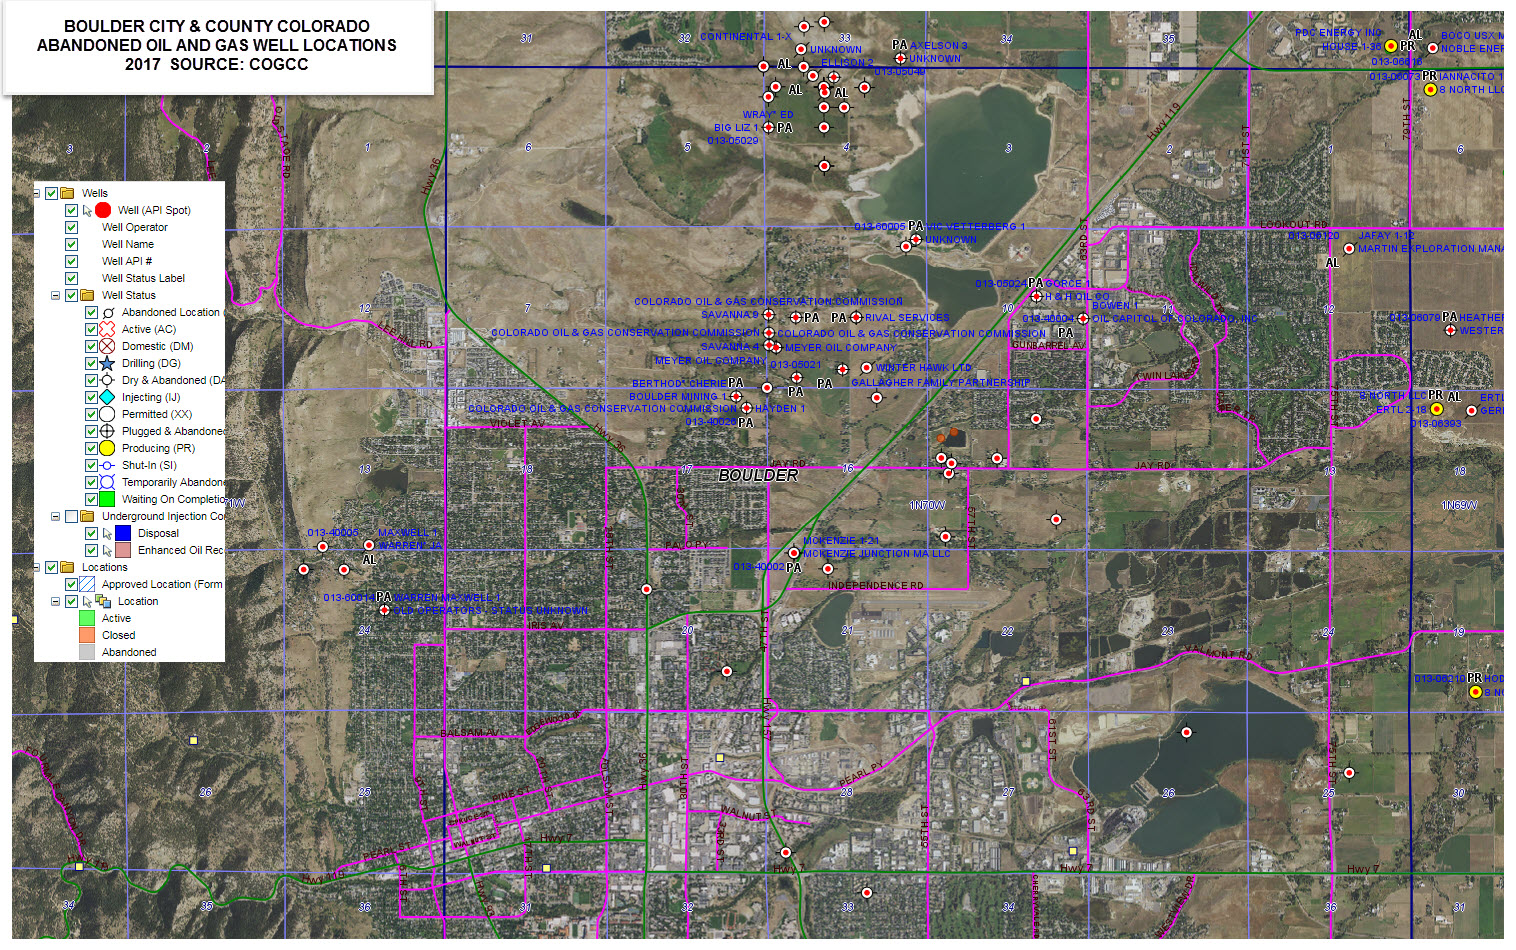 Oil Weld County Colorado Floodplain Map Wwwmiifotoscom